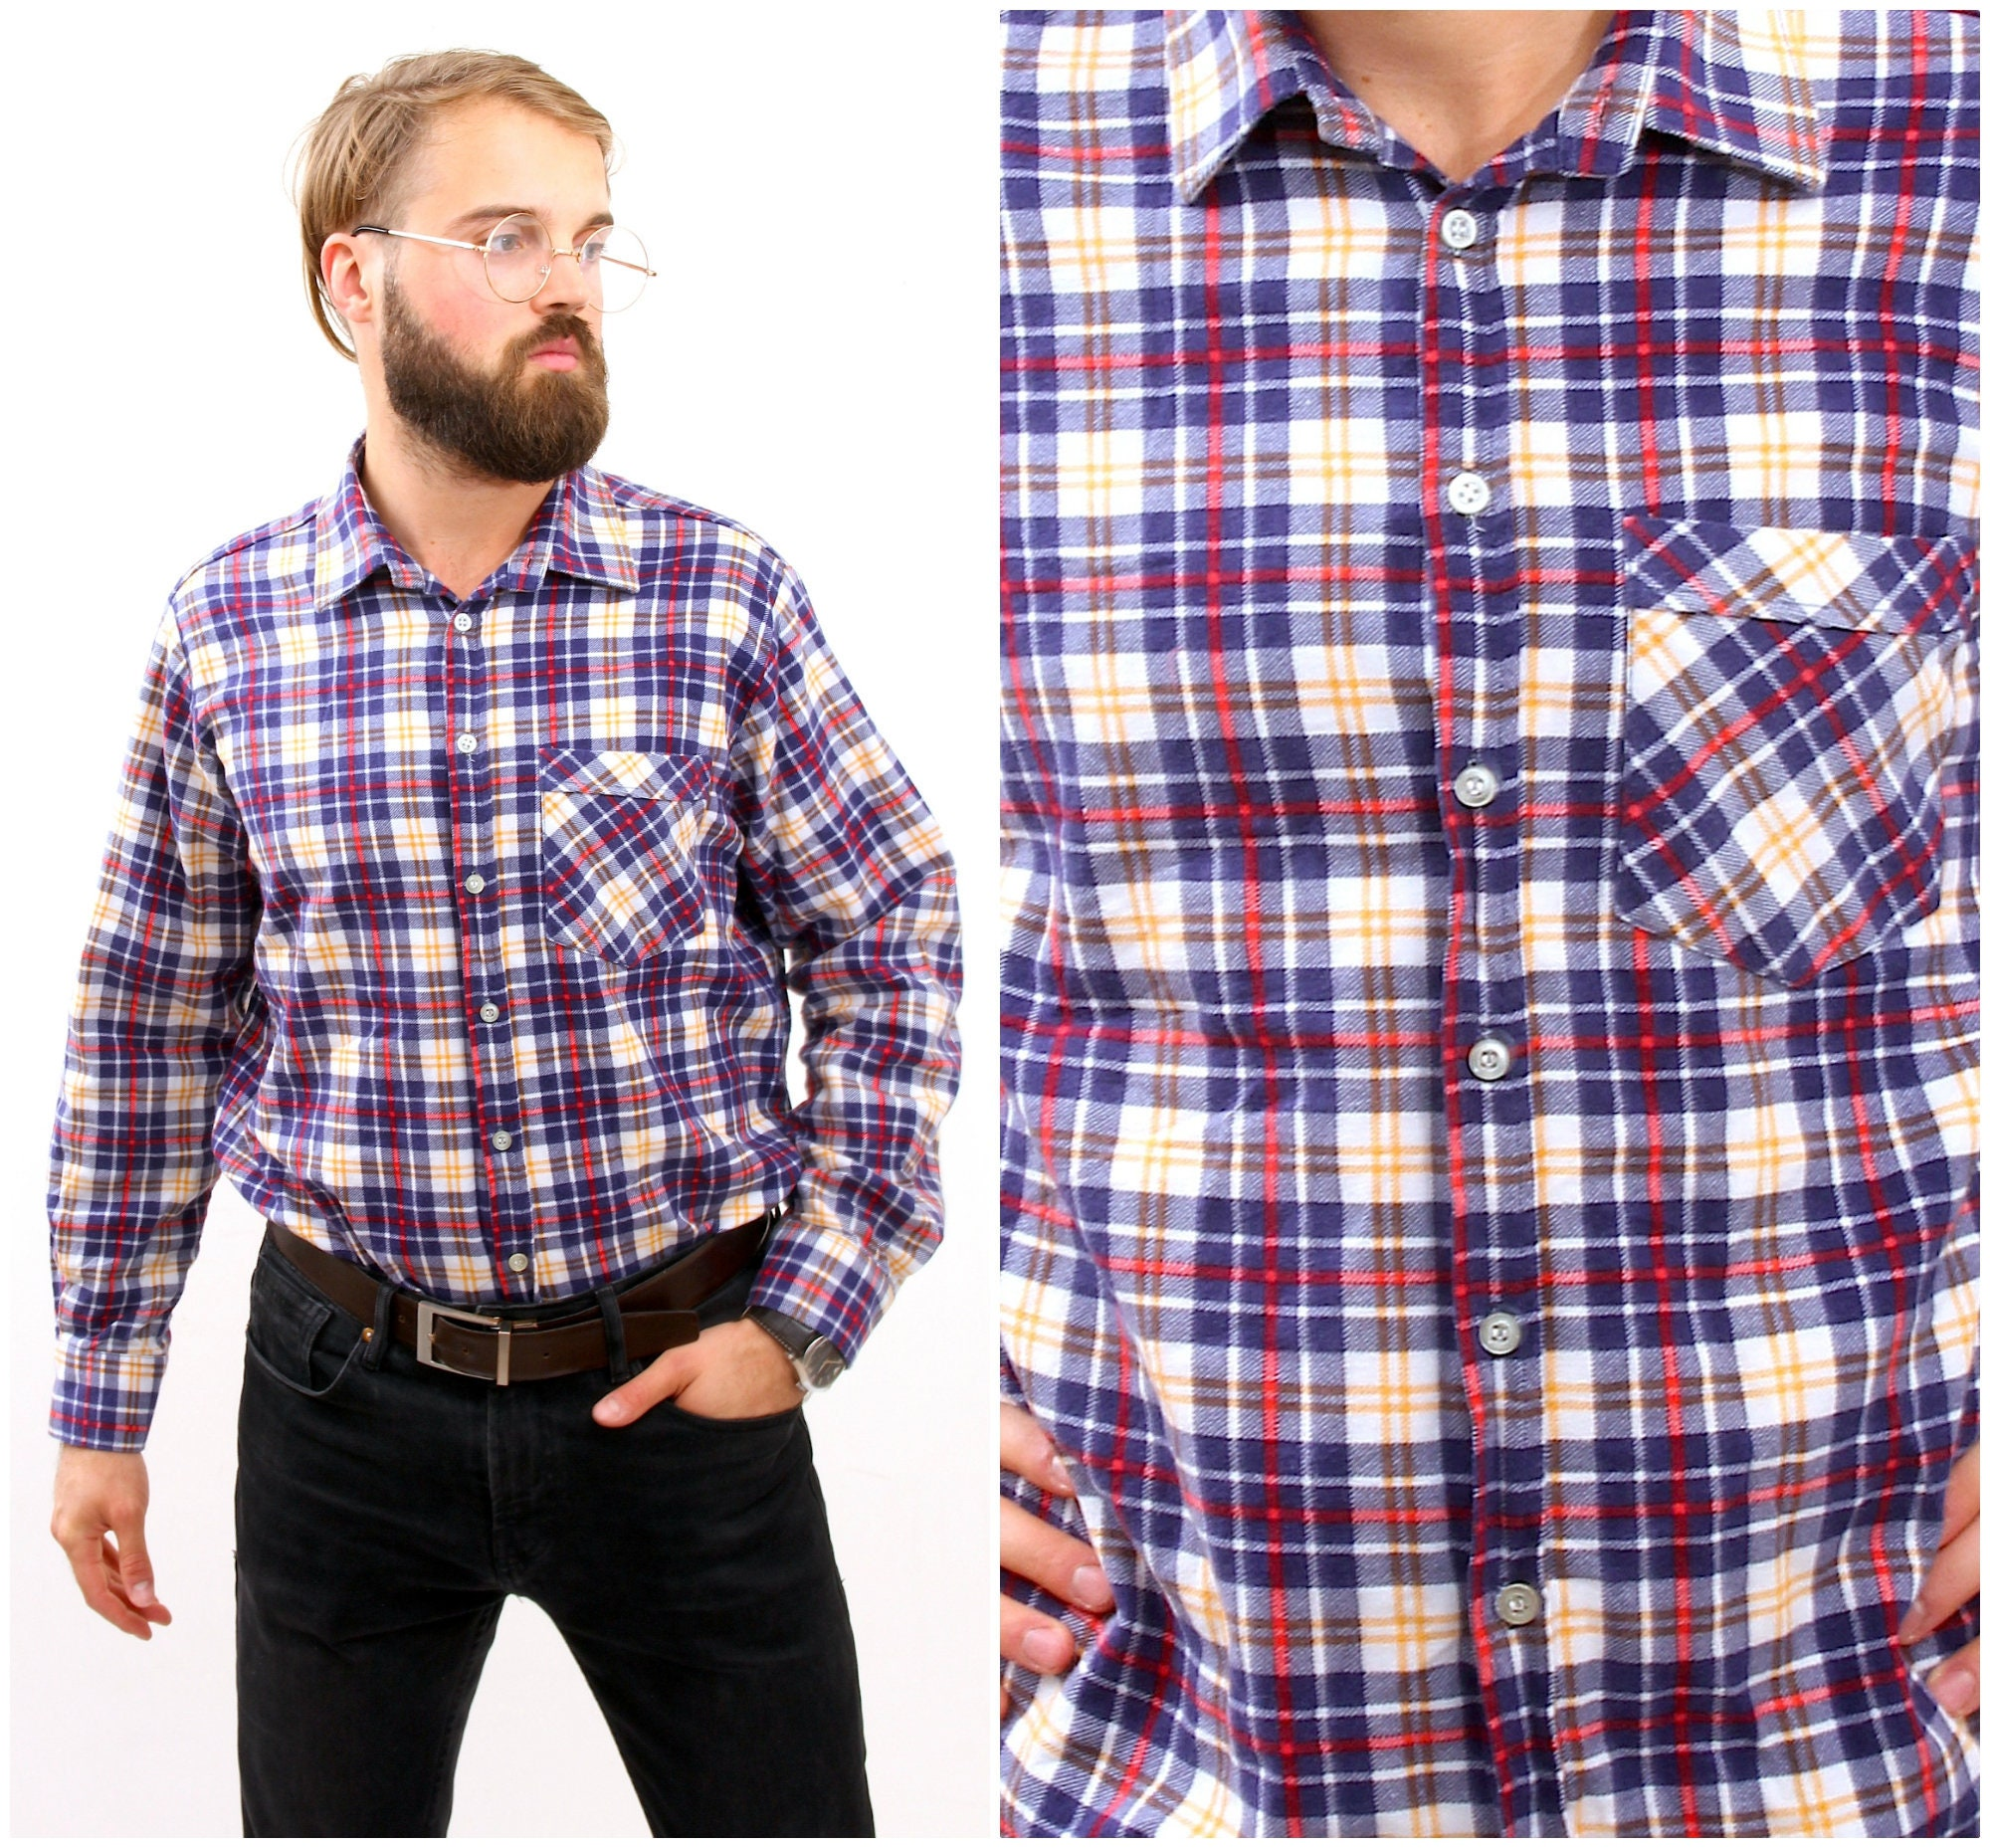 Rrive Men Chest Pocket Plaid Check Long Sleeve Button Up Fashion Shirts